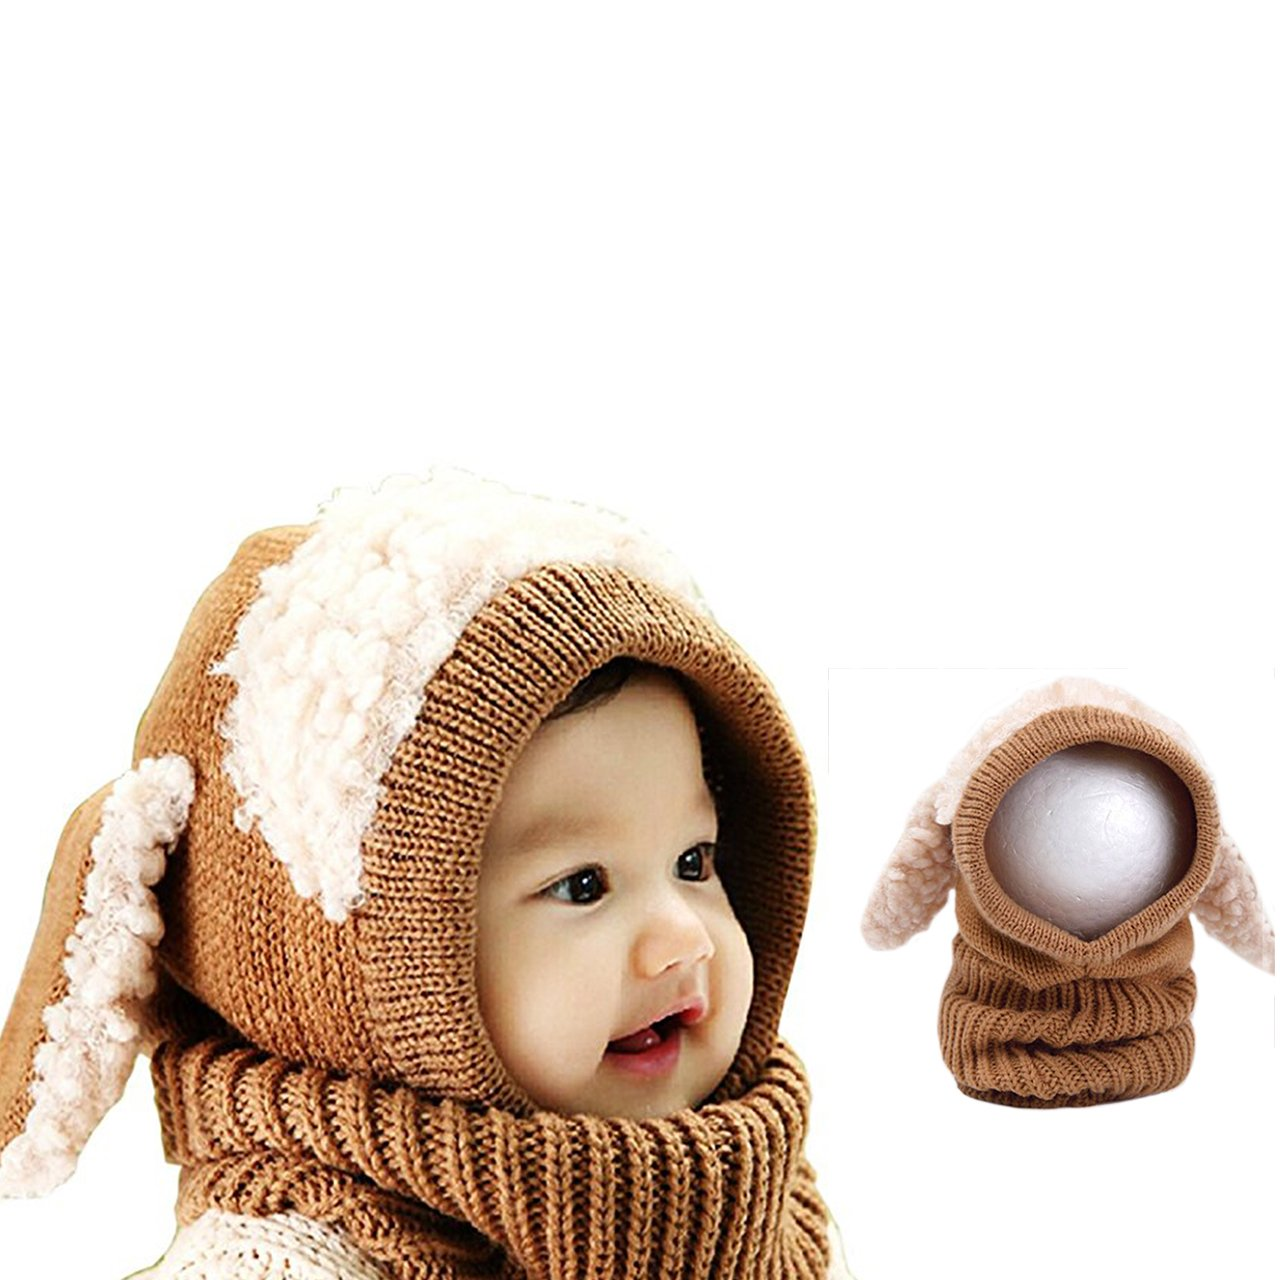 fece7fdb4 Bonice Children's Hat, Baby Girls Boys Knitted Animal Hat Hood ...